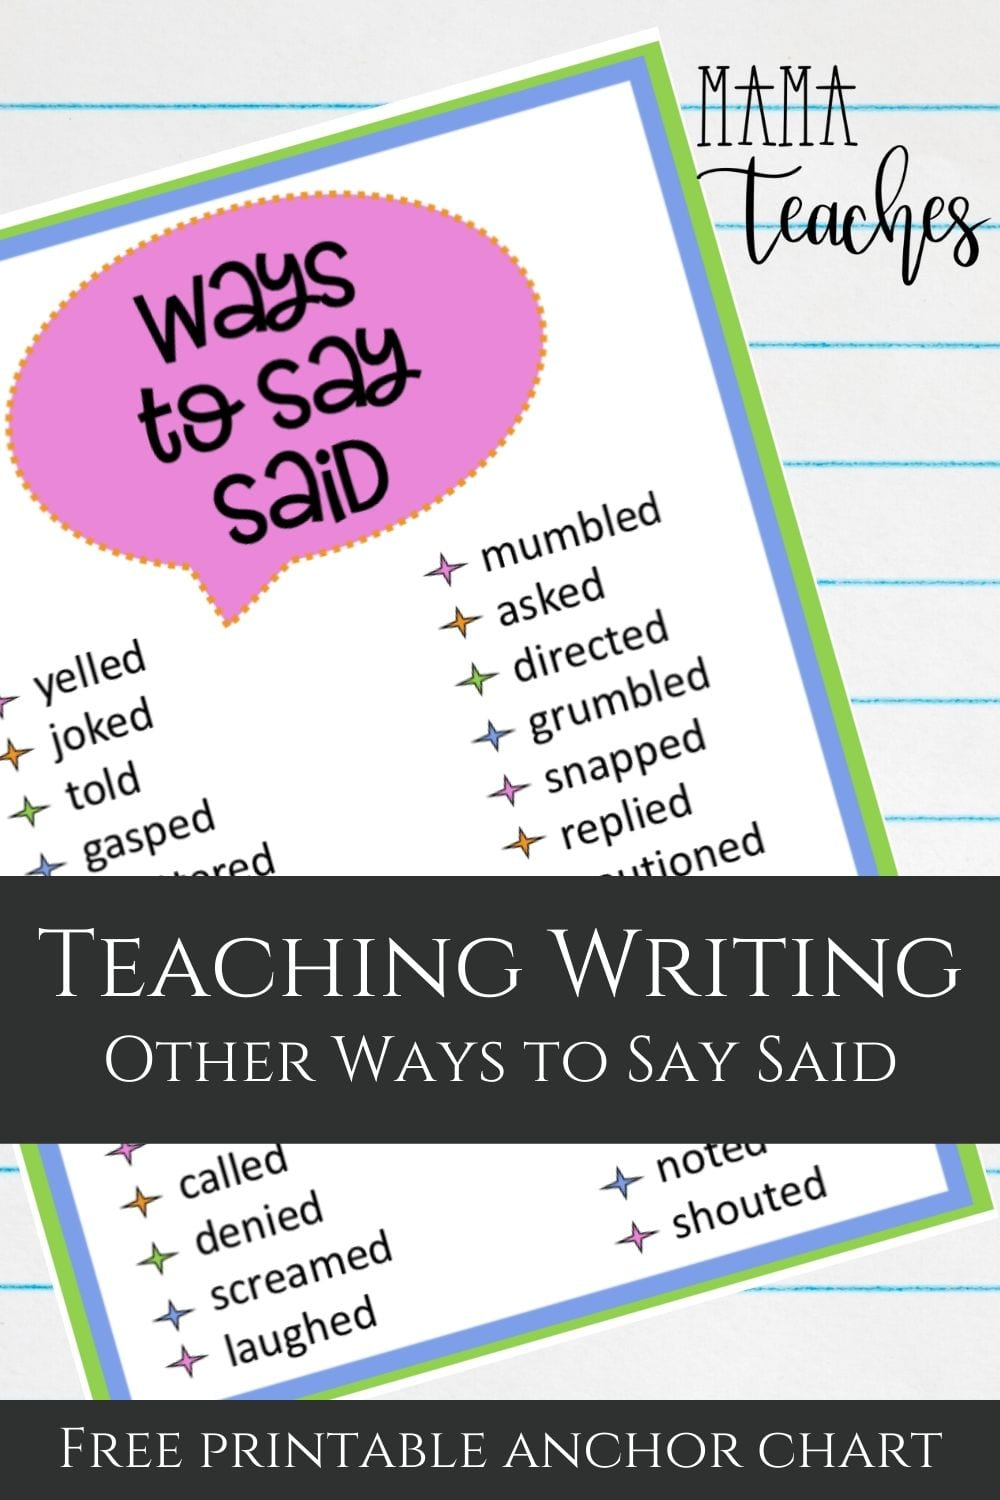 Teaching Writing - Other Ways to Say Said- Mama Teaches